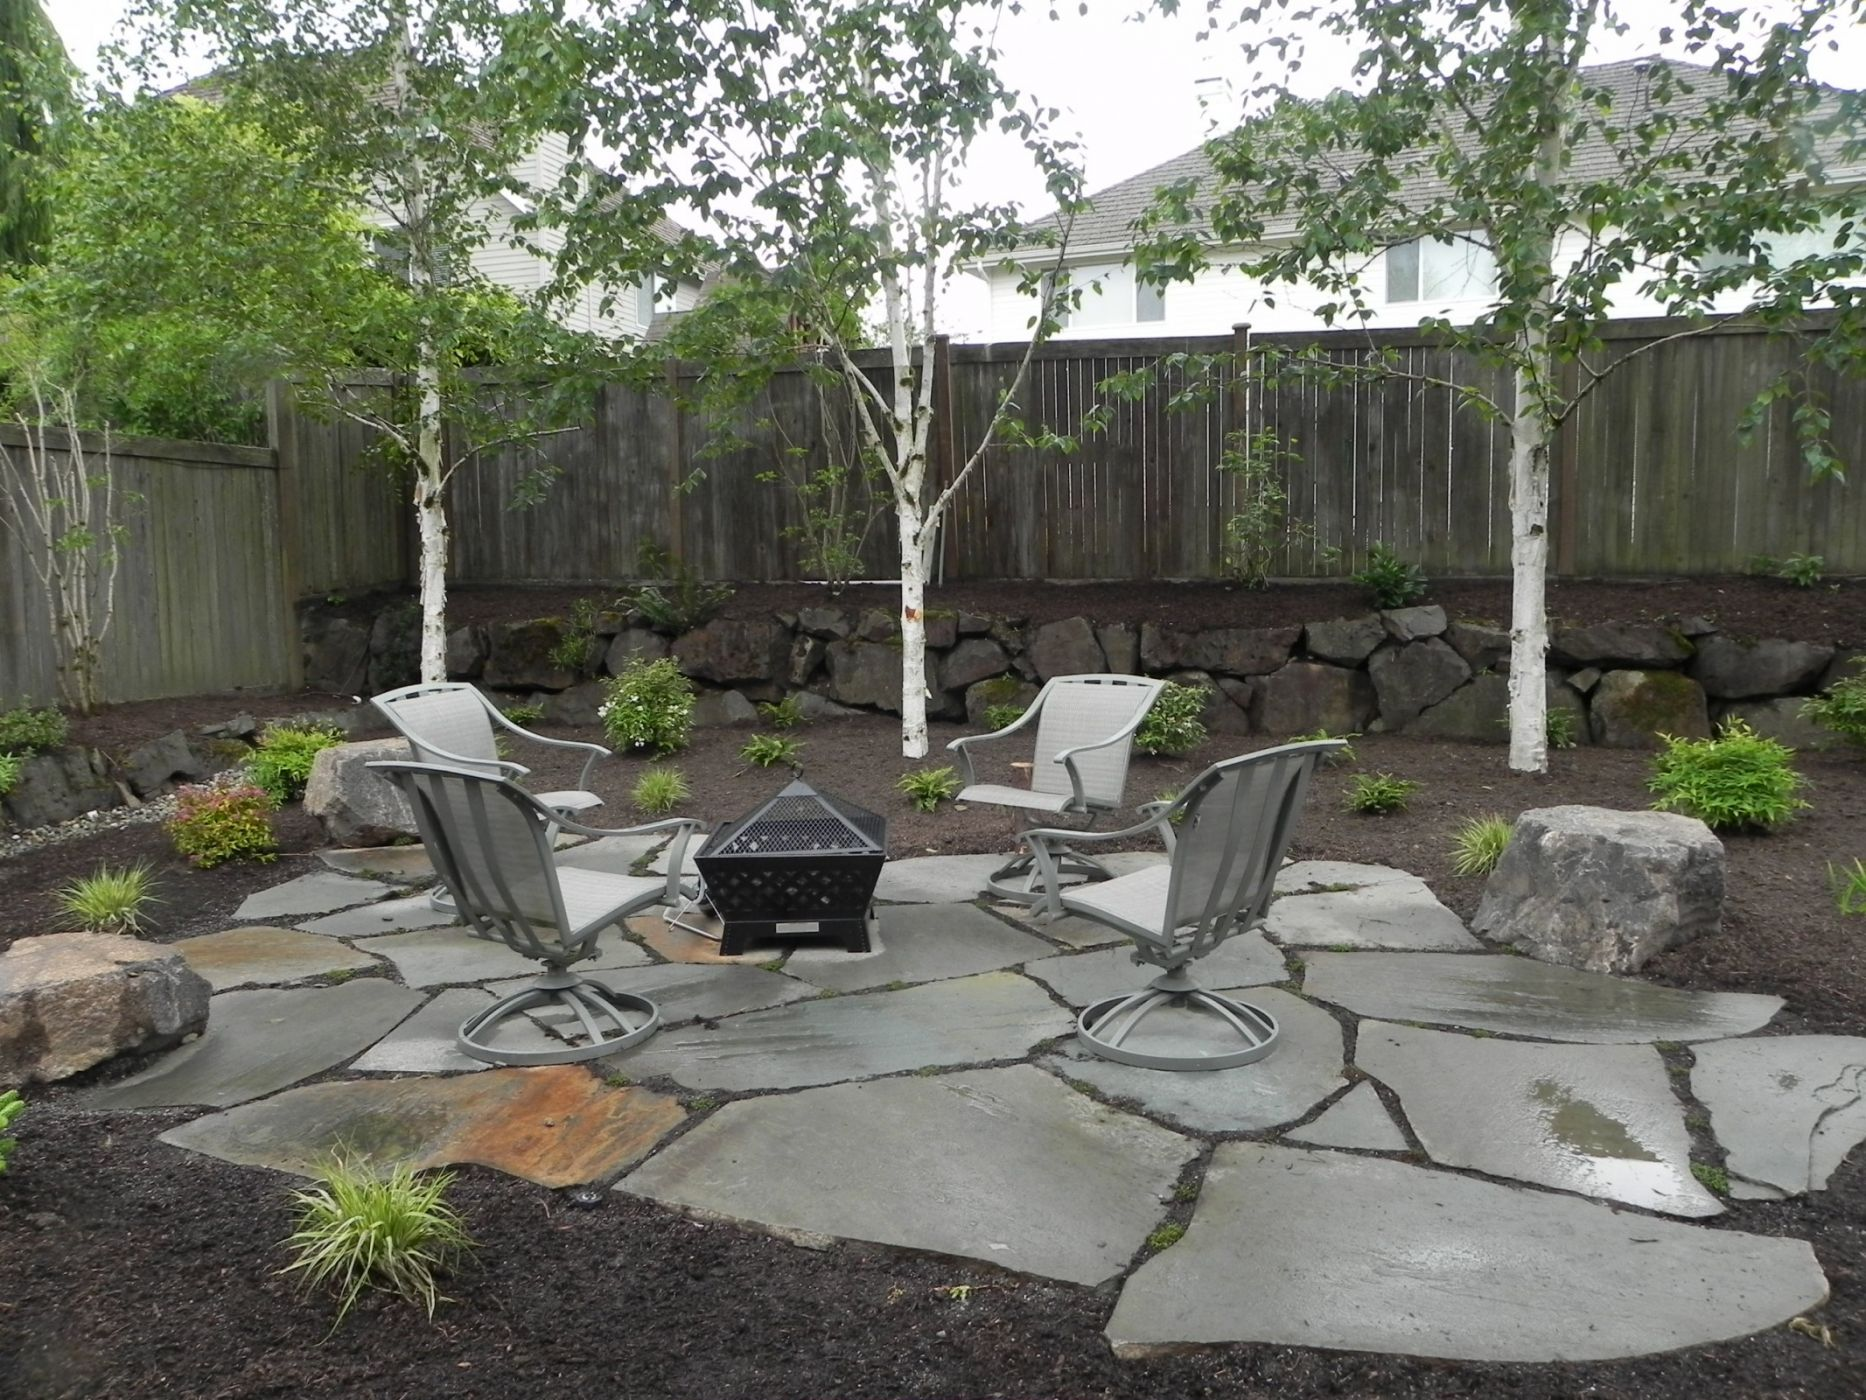 Fire Pit Ideas Backyard : Small Backyard Ideas With A Fire Pit Snohomish backyard firepit